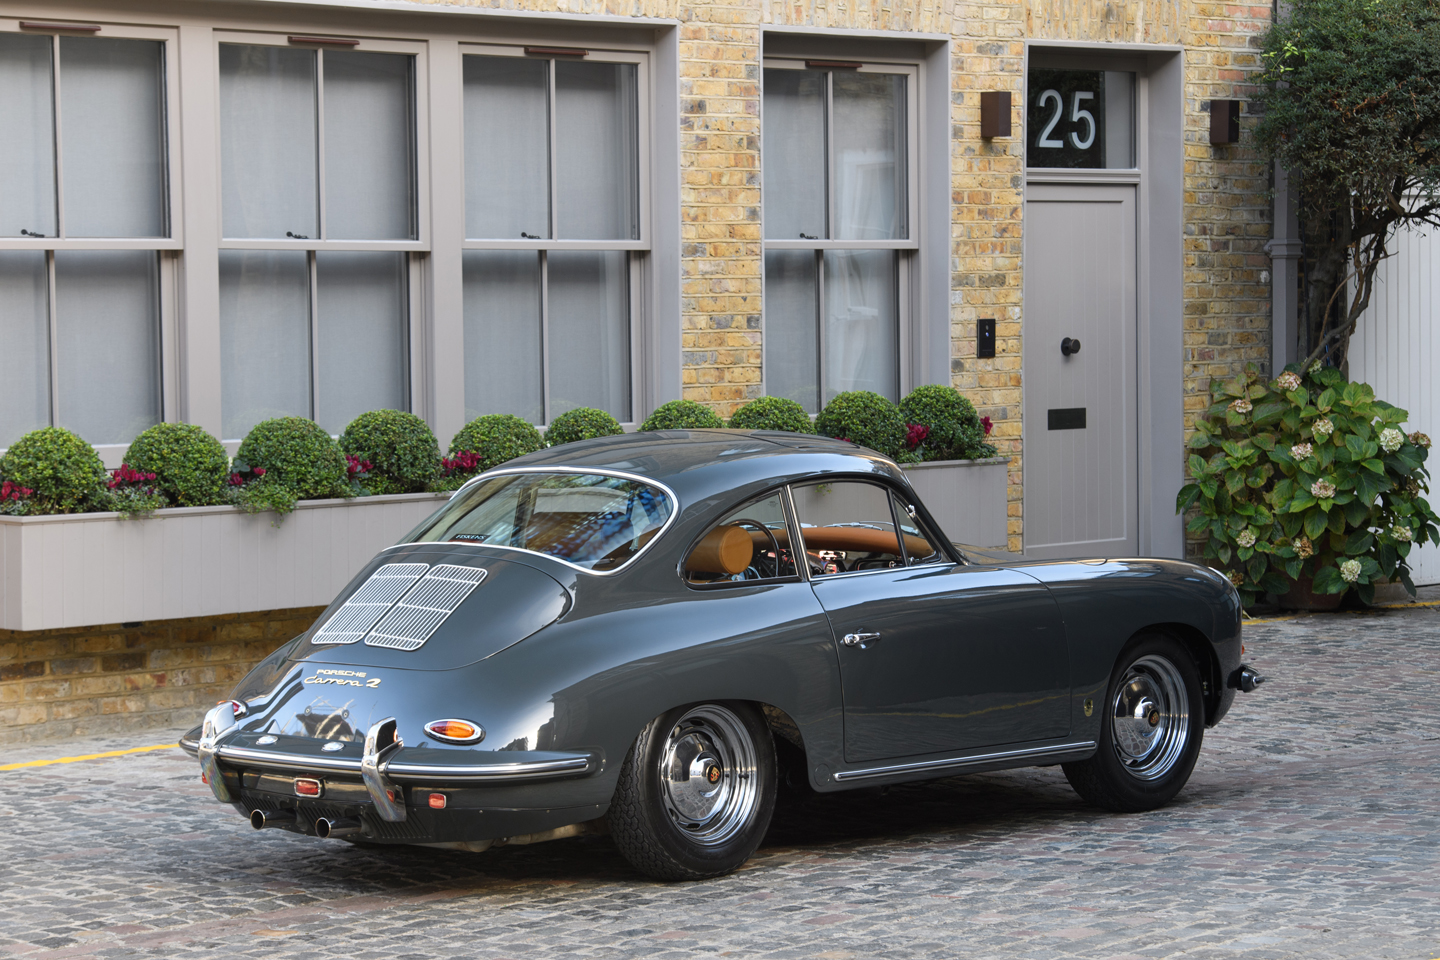 1963 Porsche 356 Carrera 2 | Previously Sold | FISKENS